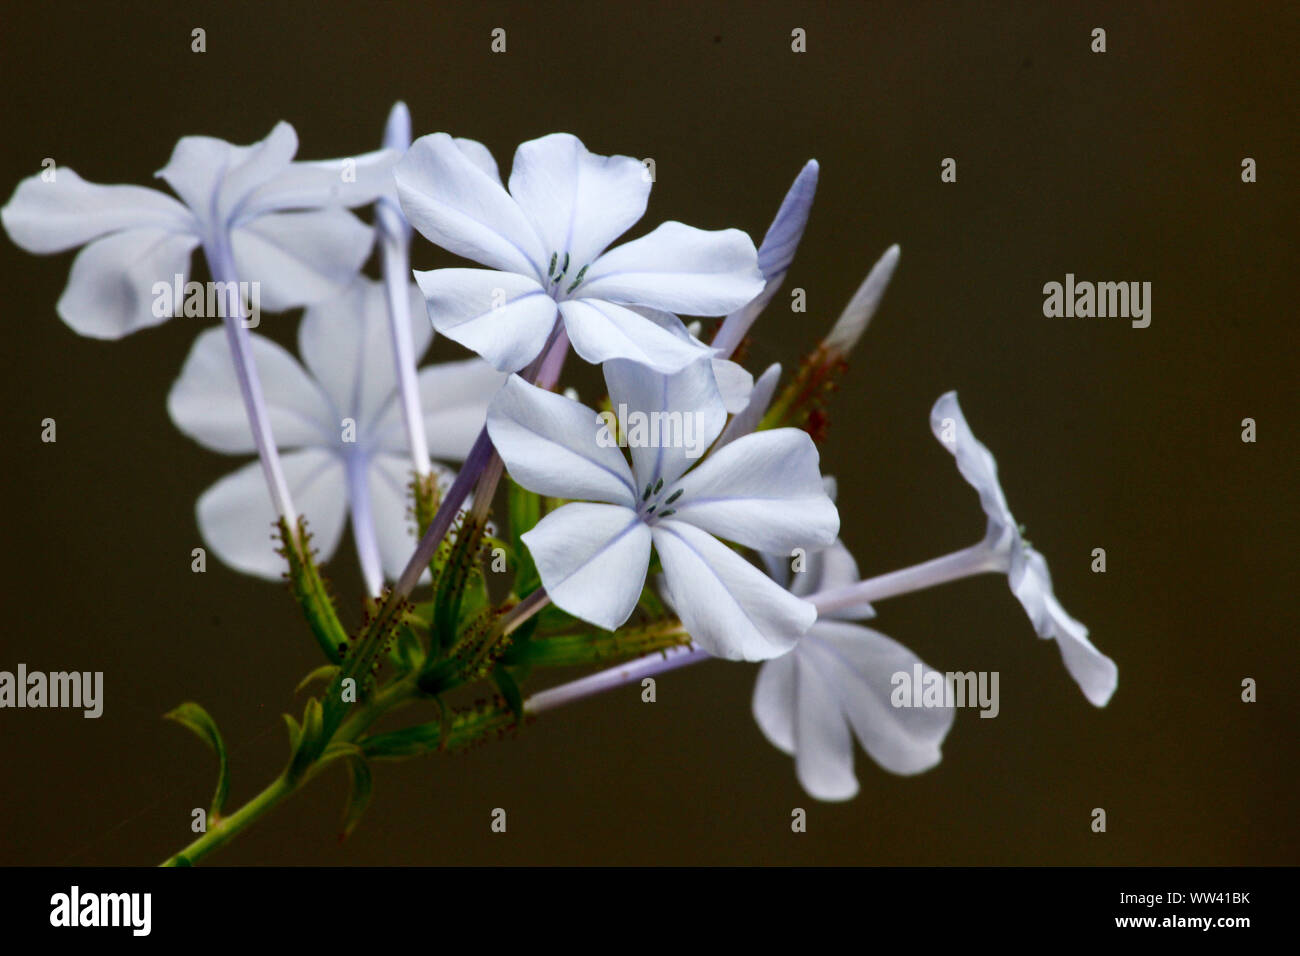 MILKY WHITE BUDS AND FLOWERS Stock Photo